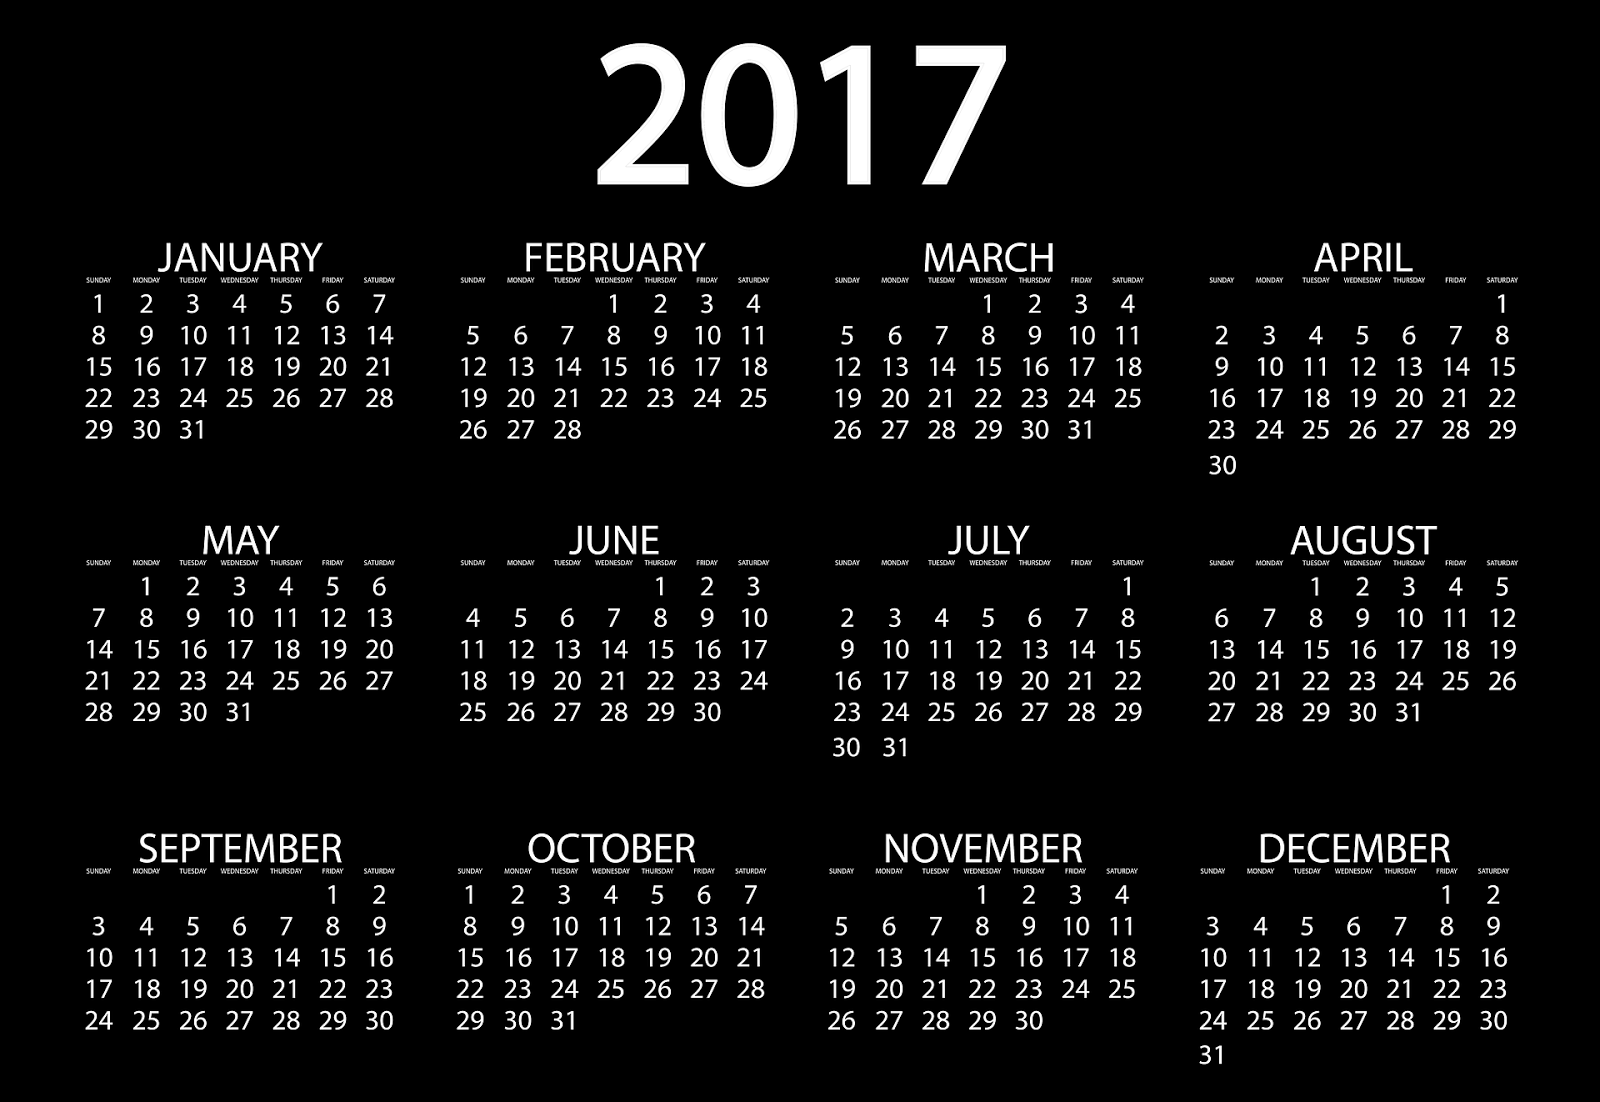 Yearly Calendar Wallpaper : Wallpapers with calendar wallpaper cave